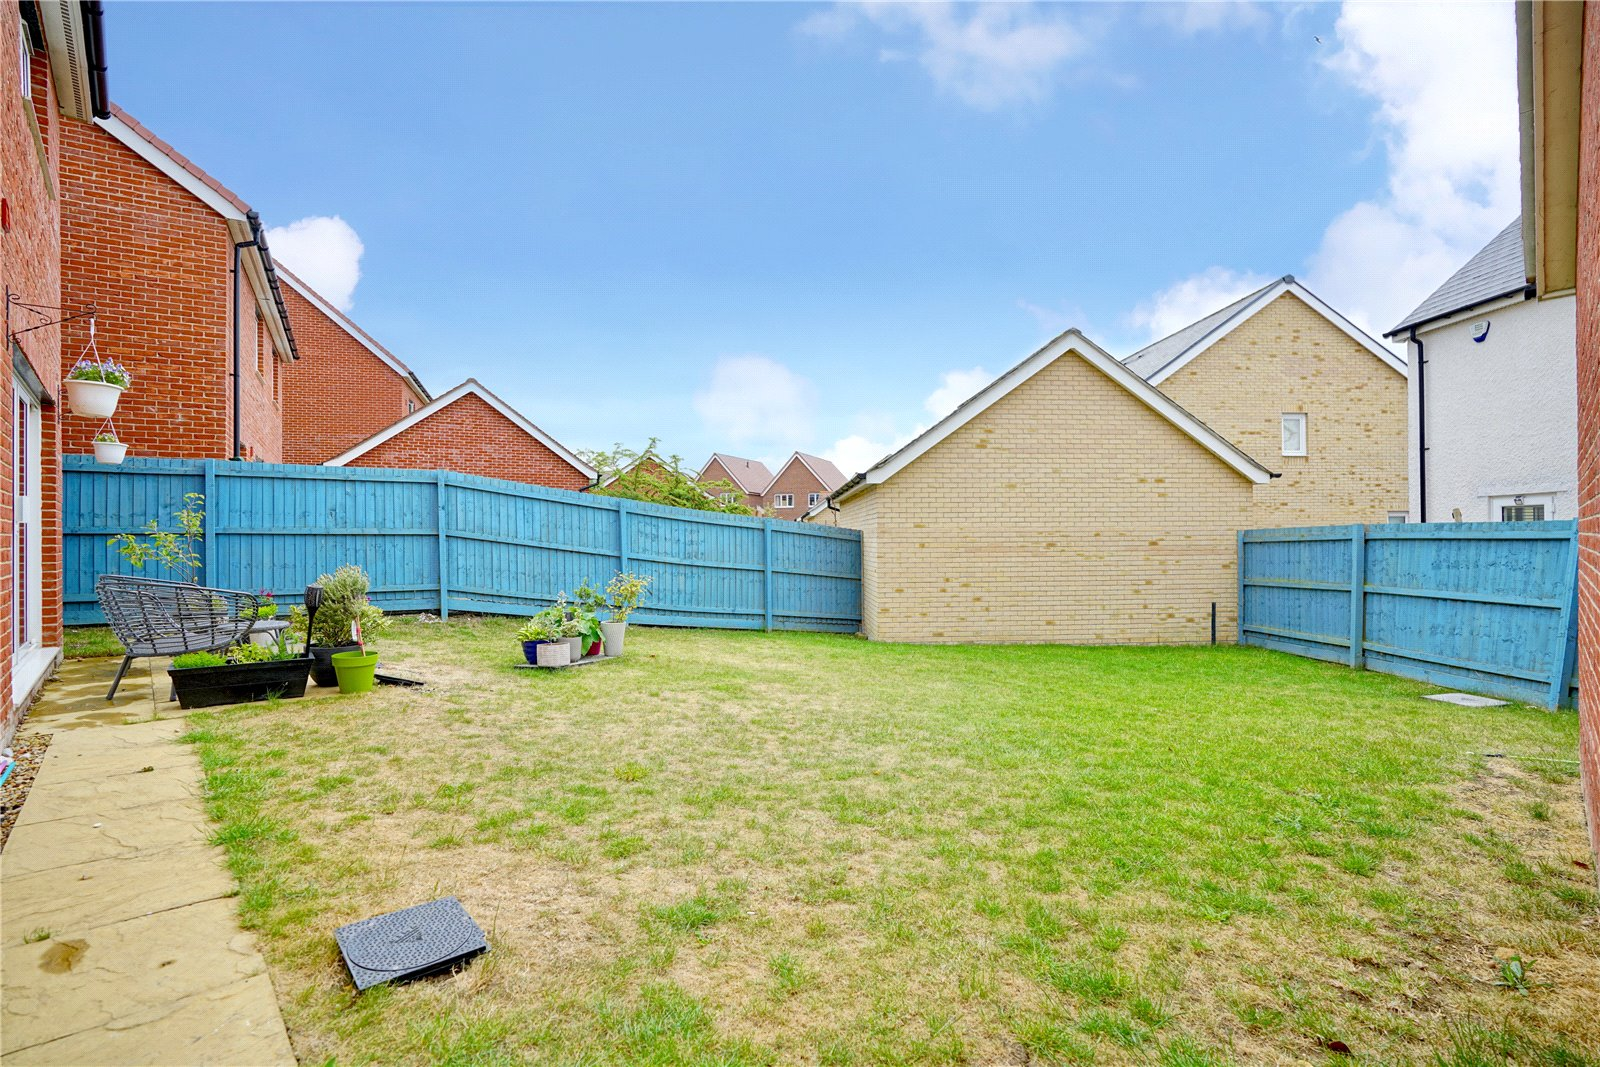 4 bed house for sale in Field Gate Close, St. Neots 5